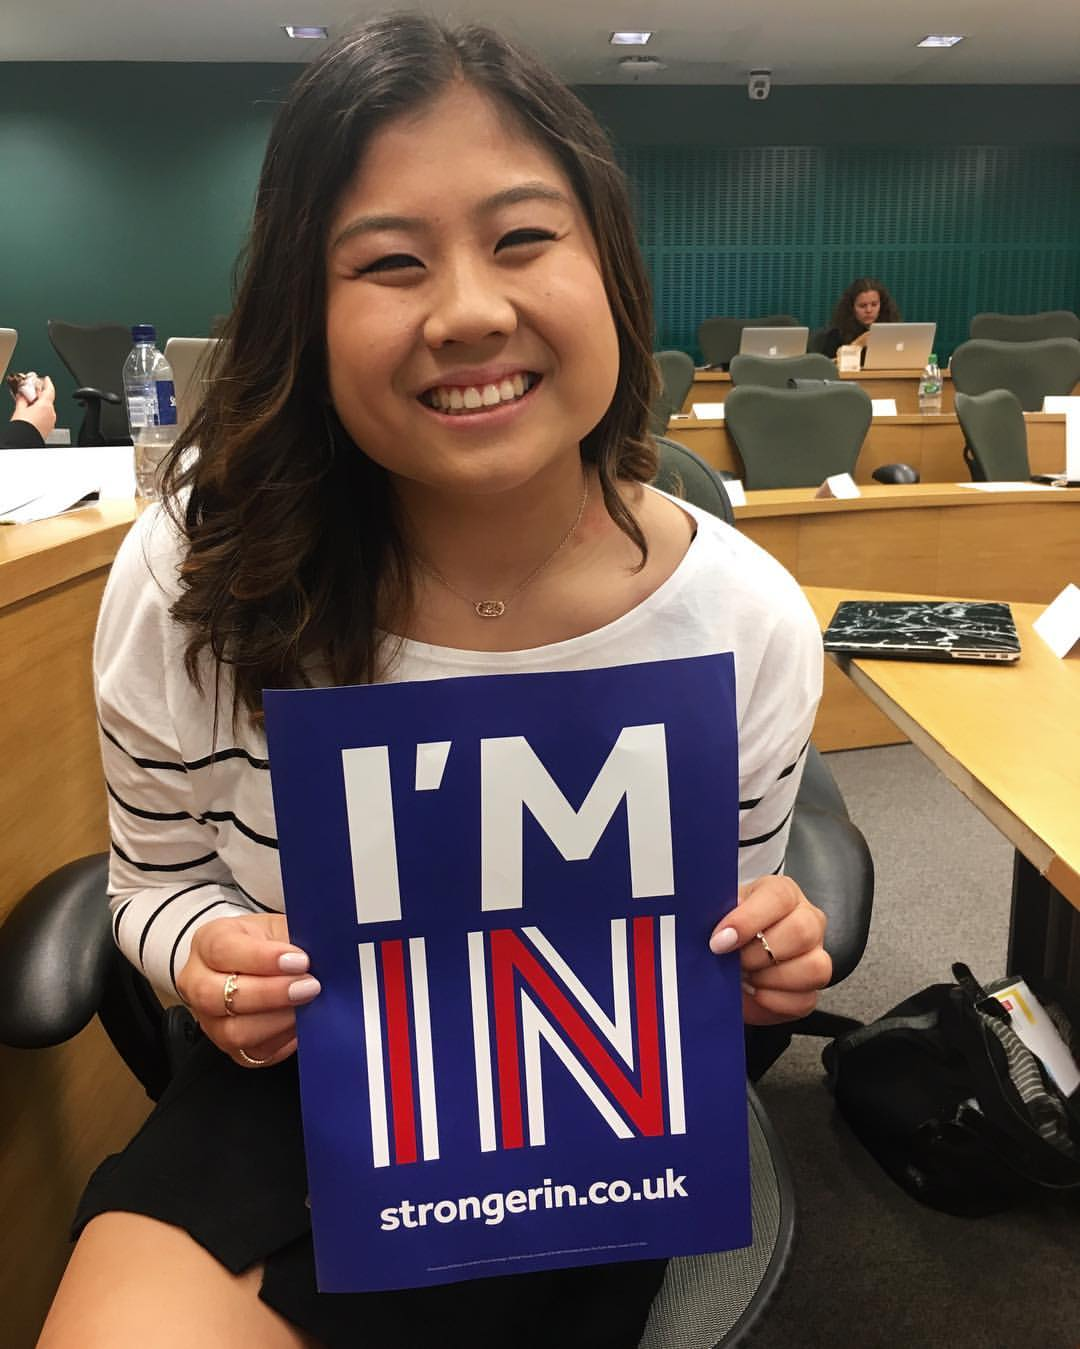 Rebecca Tjahja holds a sign supporting the U.K. staying in the European Union. The finance junior was studying abroad at the London School of Economics during the June 23 referendum. Photo courtesy of Rebecca Tjahja.